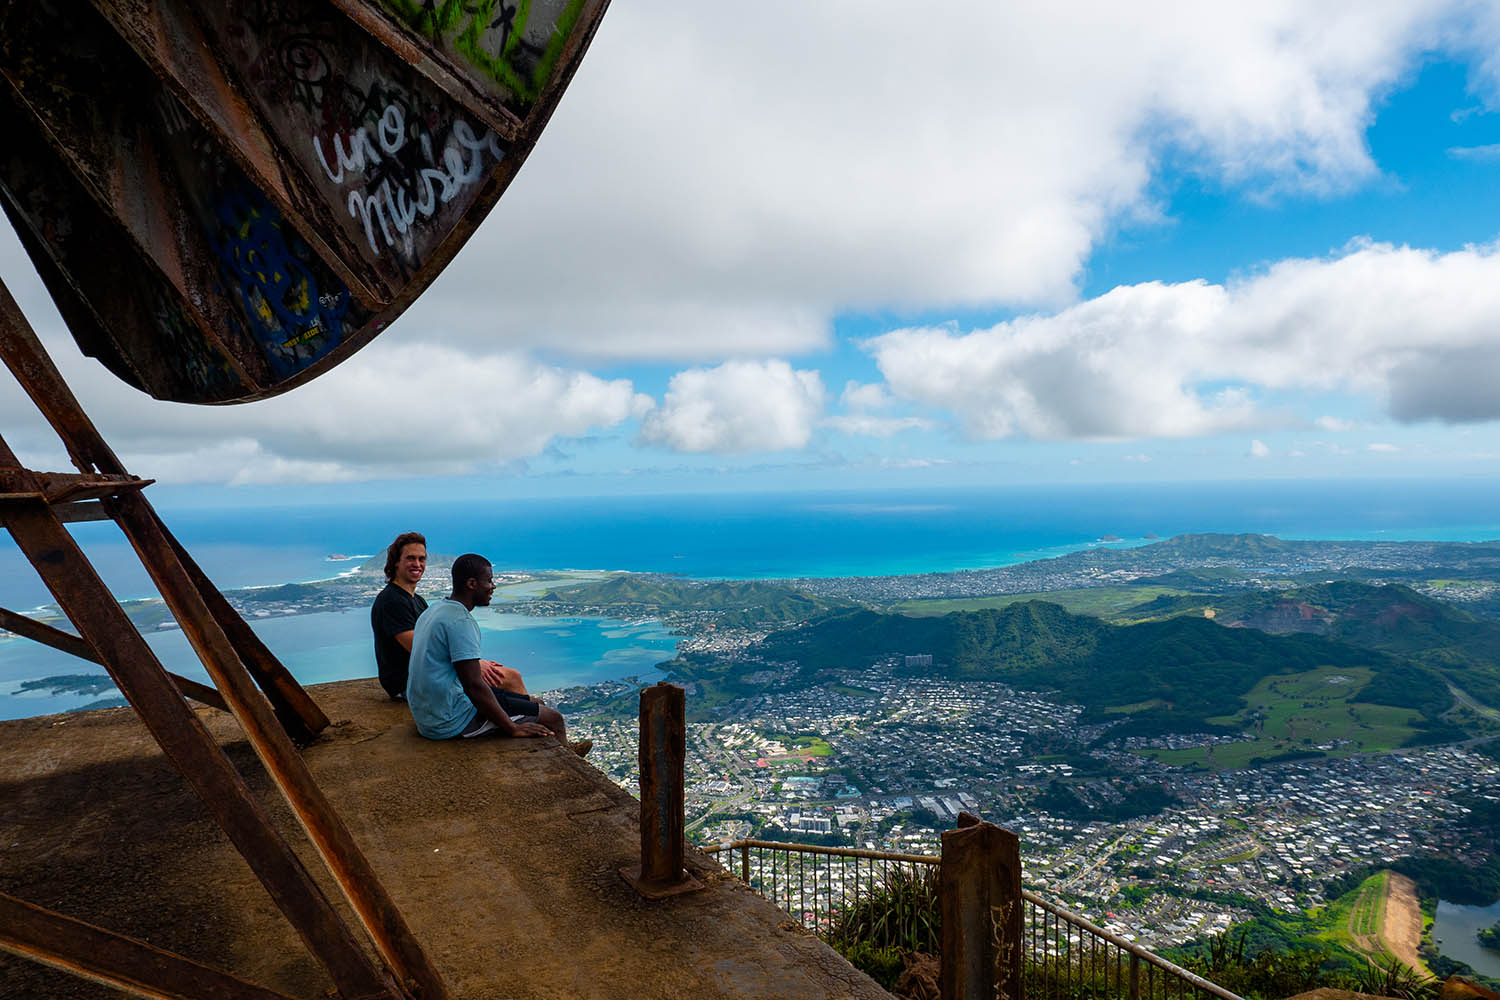 Rental Car Places >> Stairway to Heaven Oahu – 1 Life on Earth